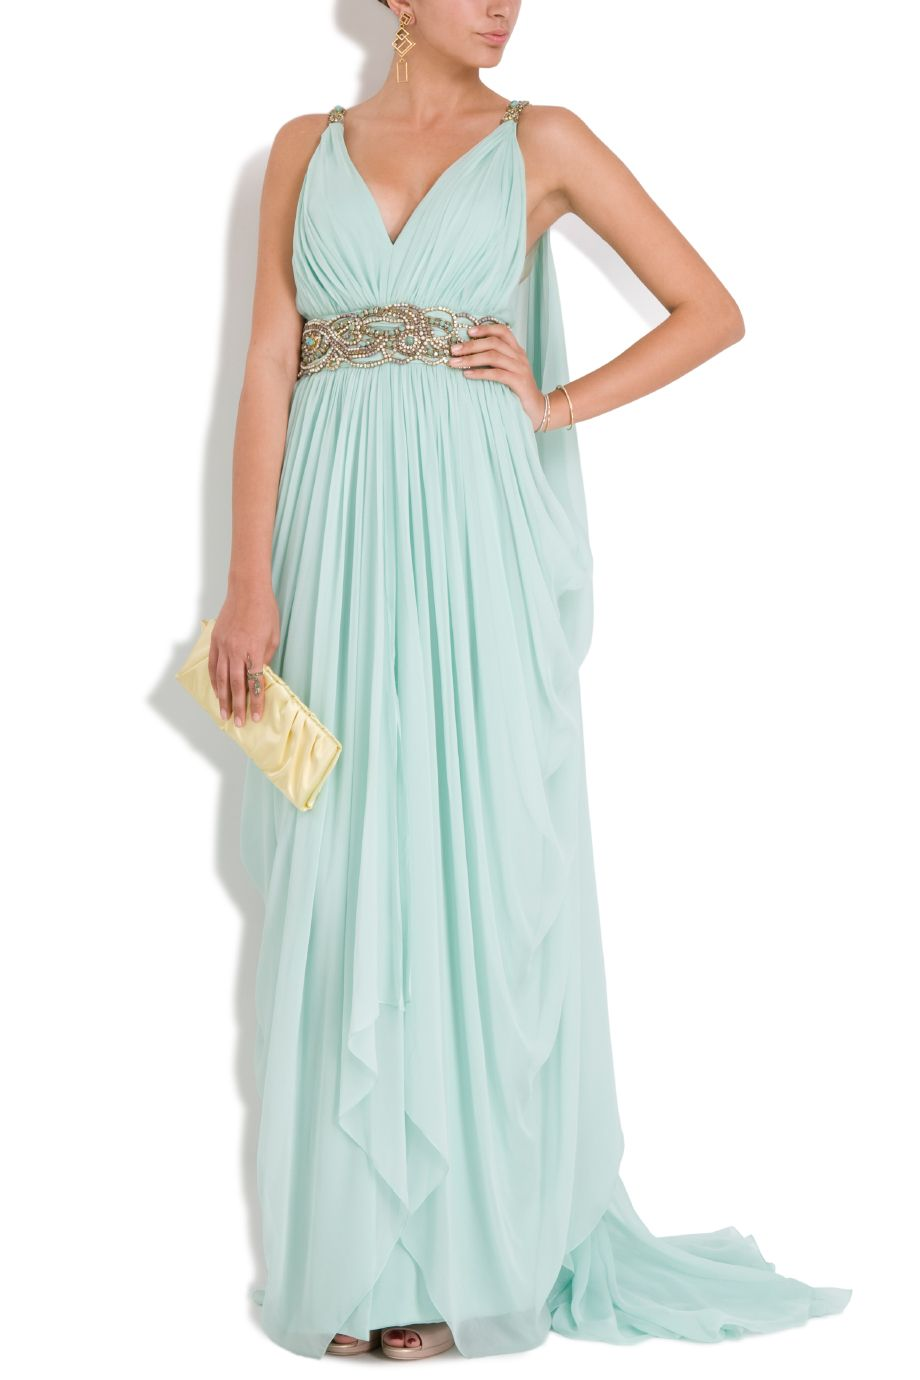 Chiffon Grecian Bridesmaid Dresses Teal